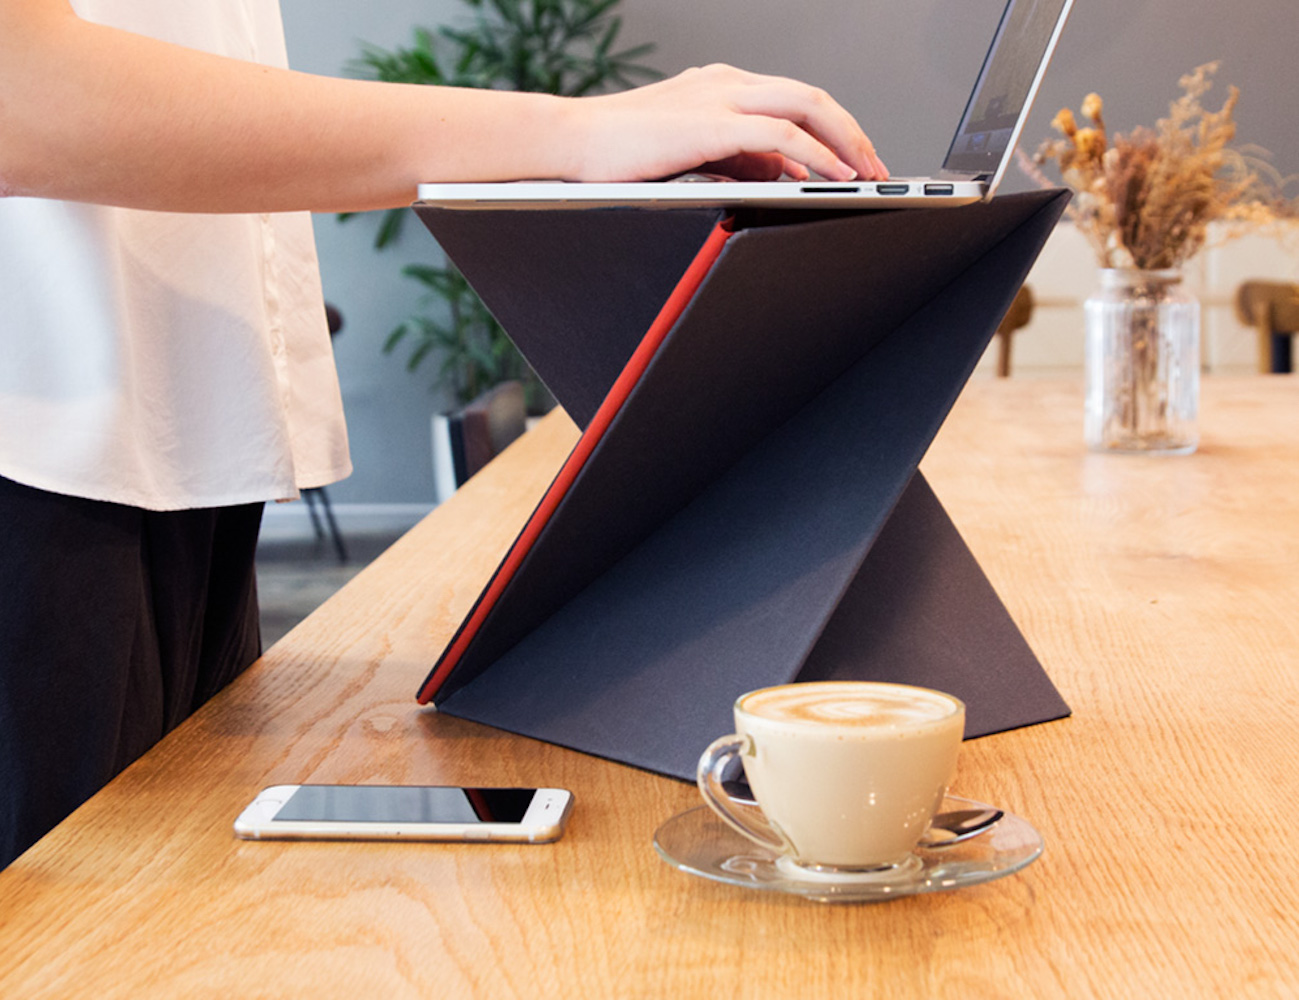 levit8-the-flat-folding-portable-standing-desk-01